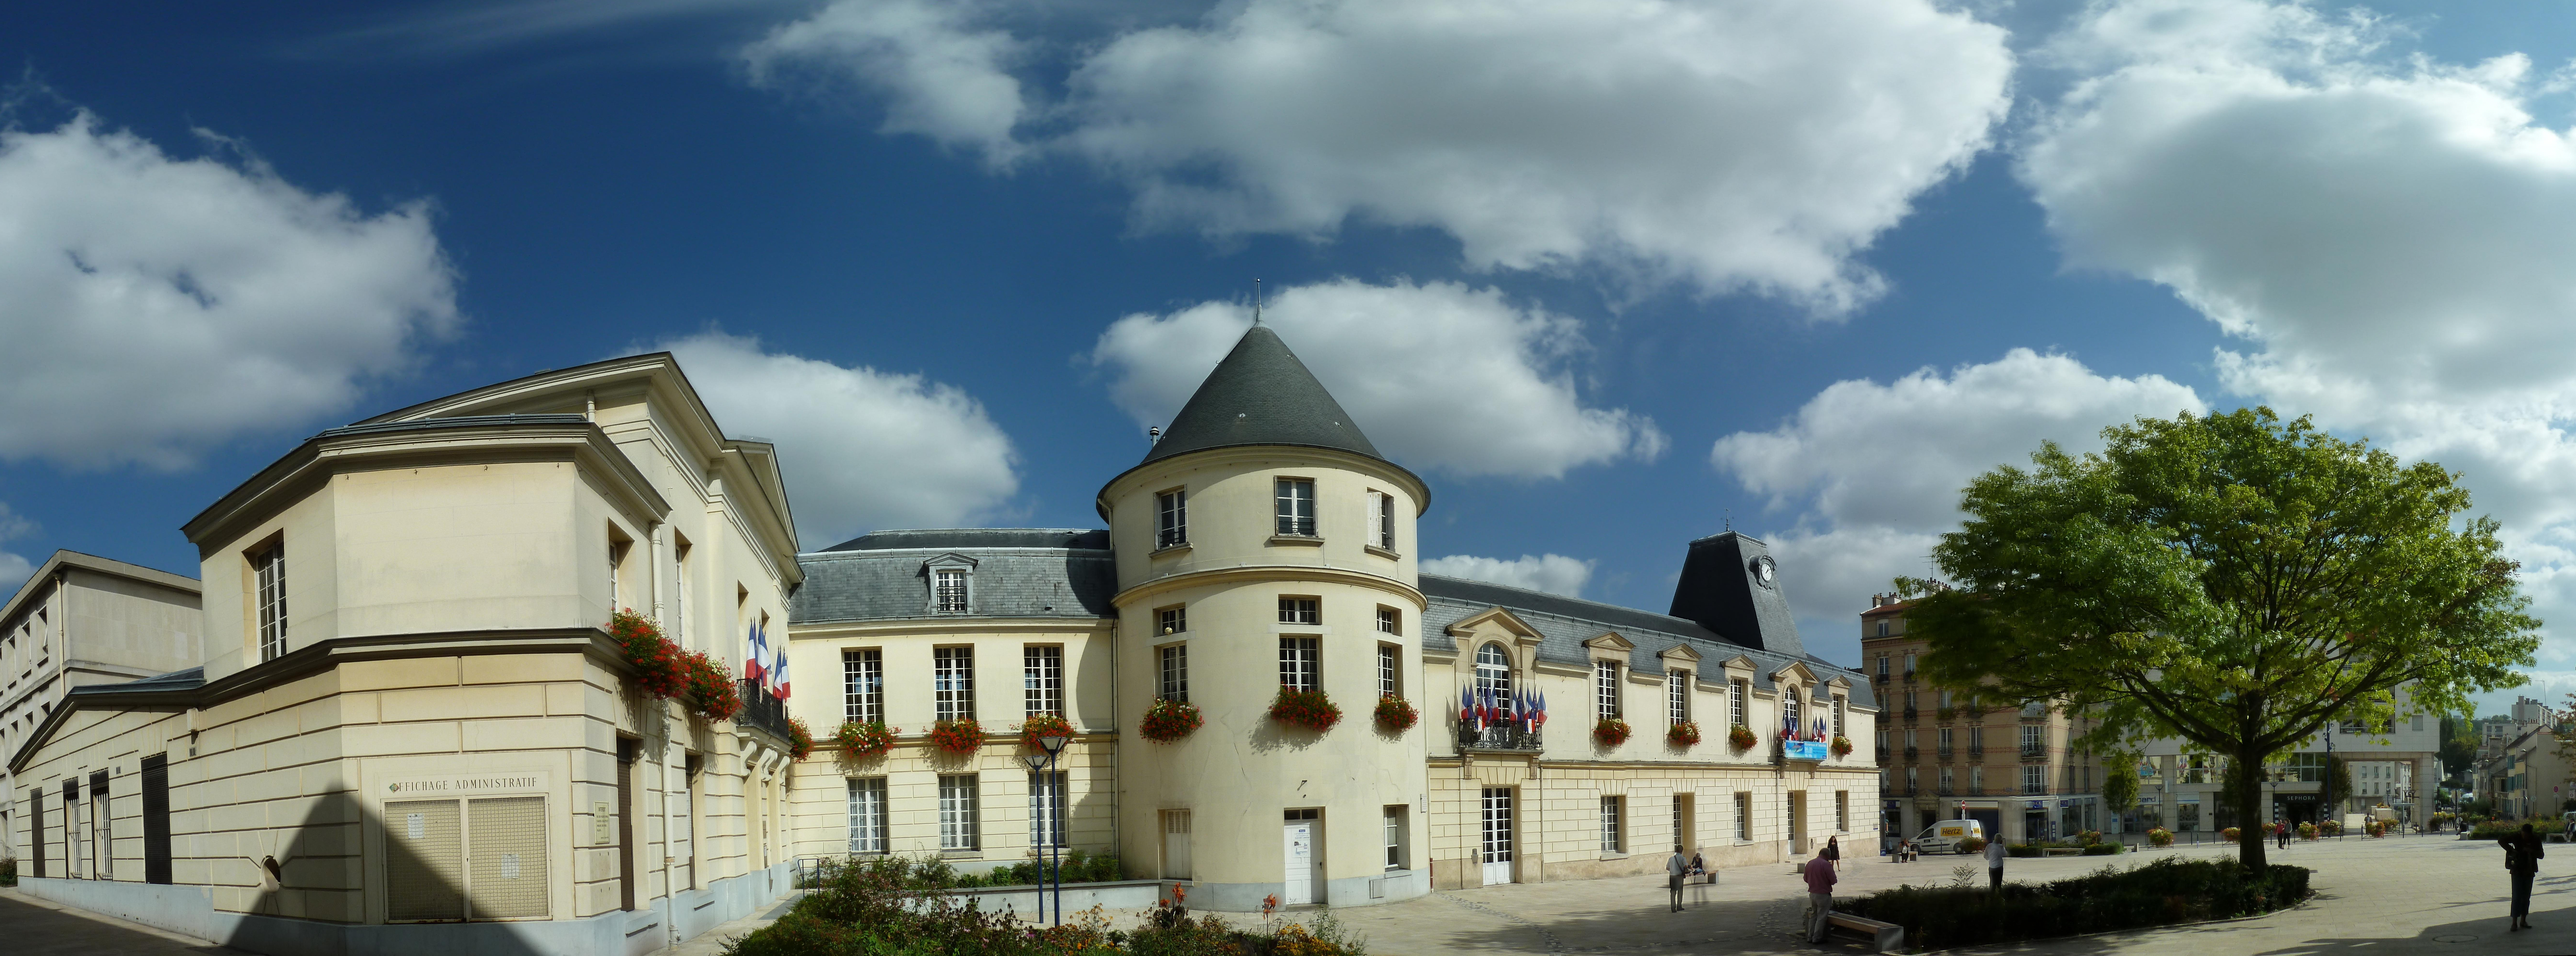 Clamart France Pictures And Videos And News